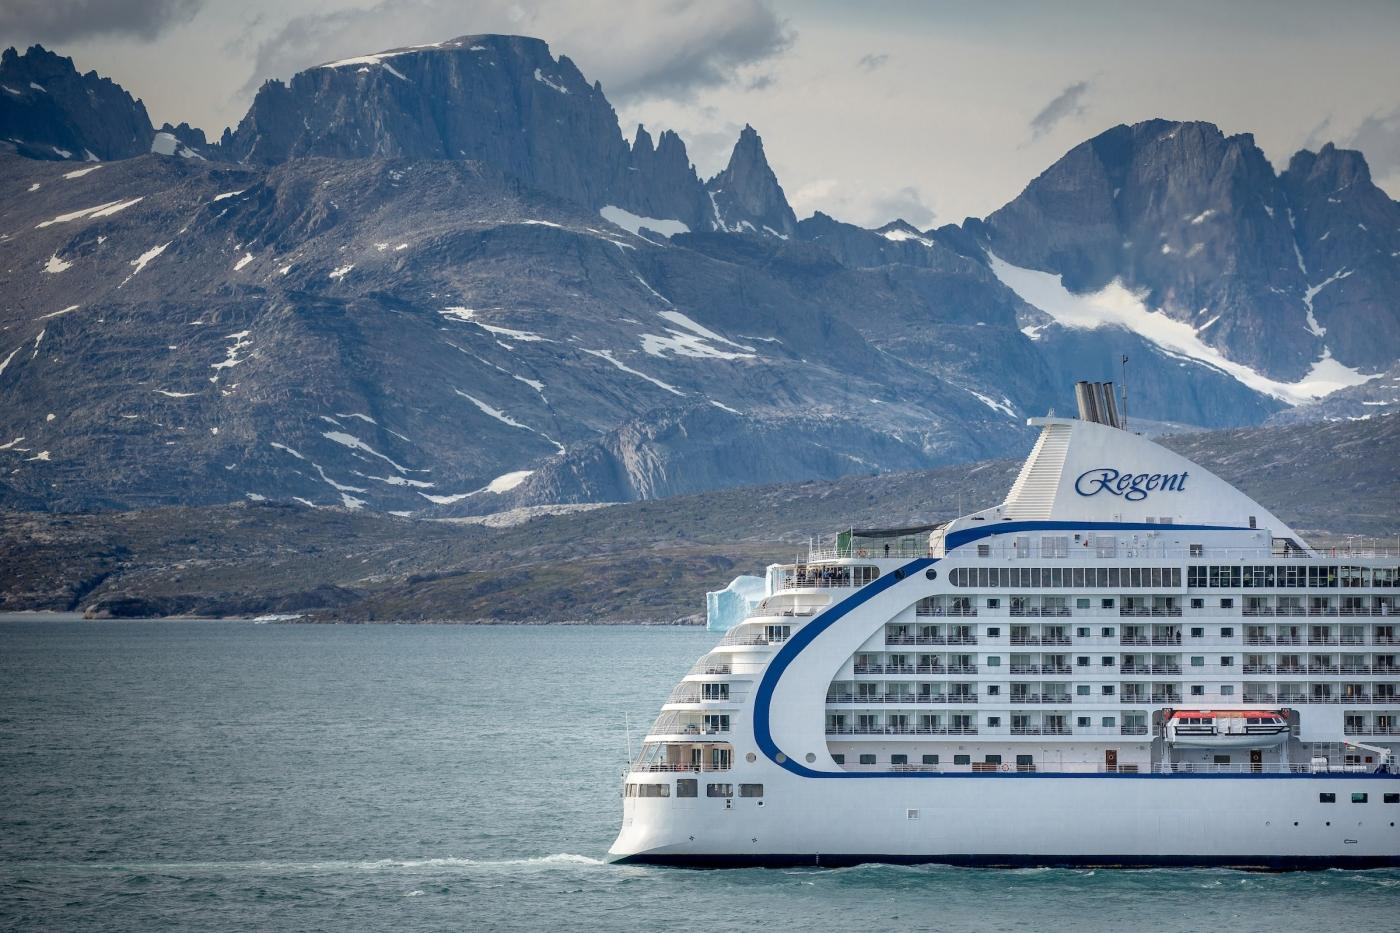 Regent Cruises near Aappilattoq in South Greenland. Photo by Mads Pihl - Visit Greenland